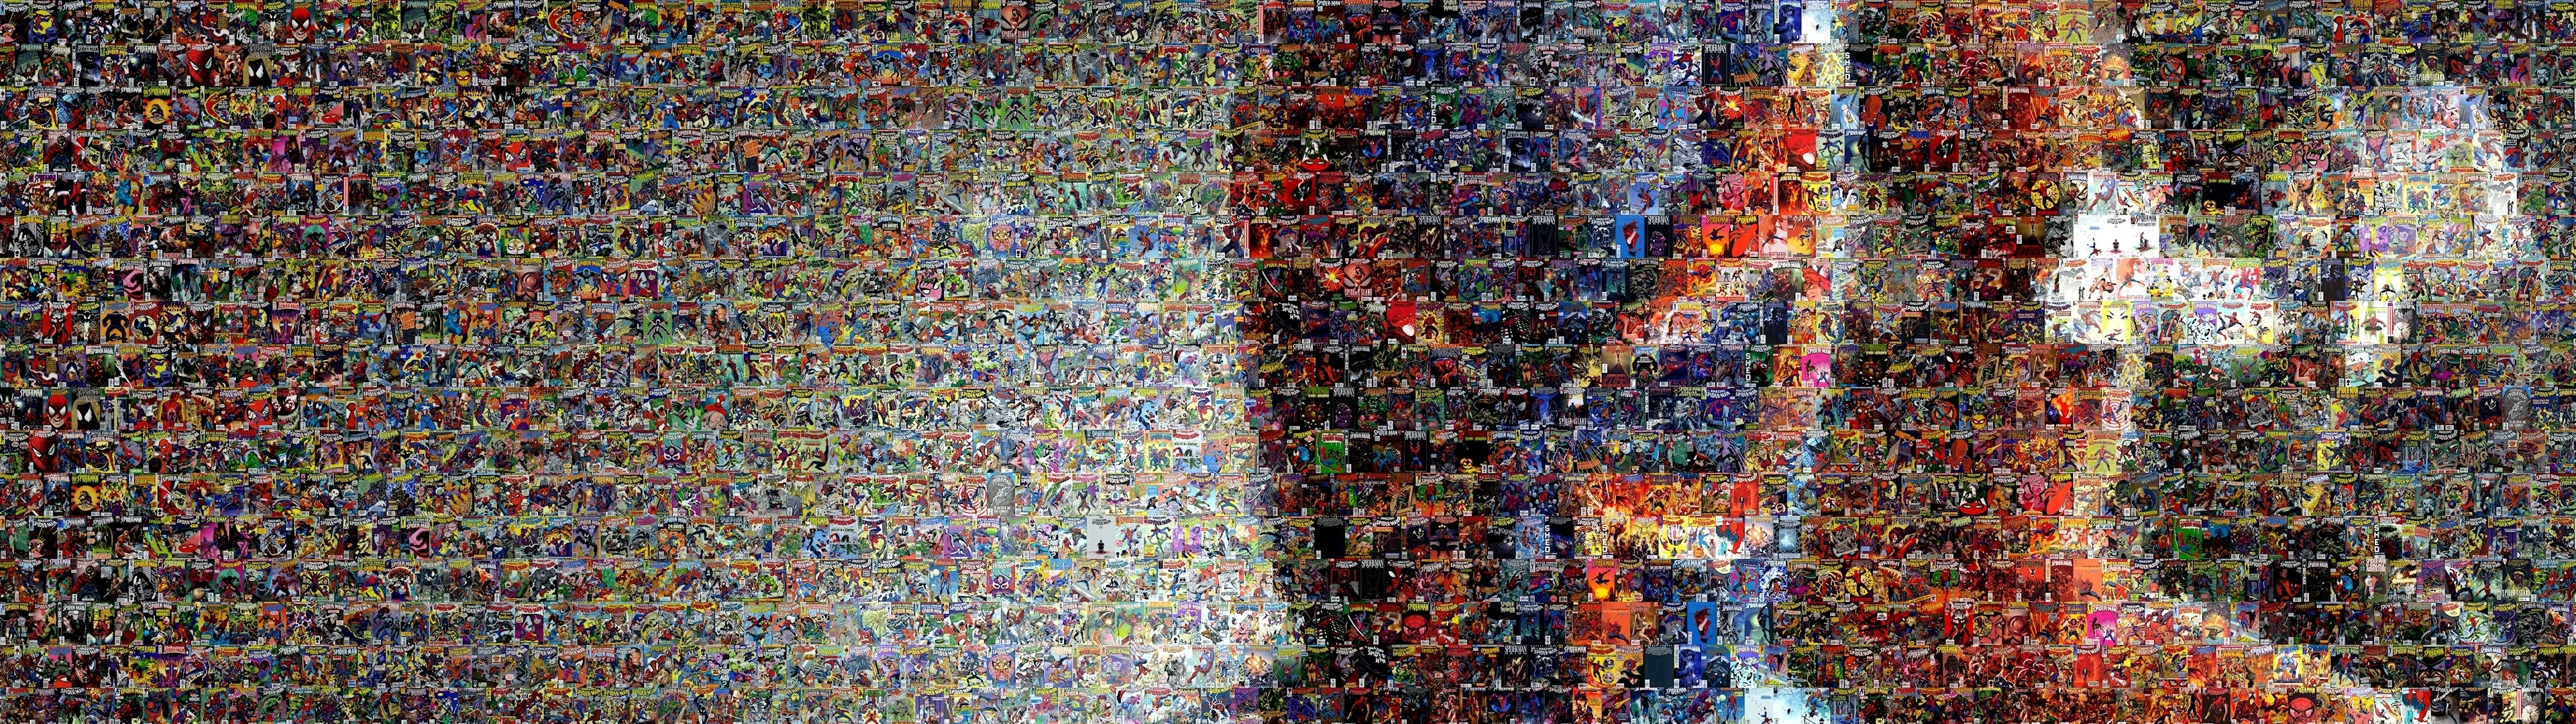 Spiderman Mosaic Marvel Comics Collage Multi Dual Screen E Wallpaper 3840x1080 48666 Wallpaperup